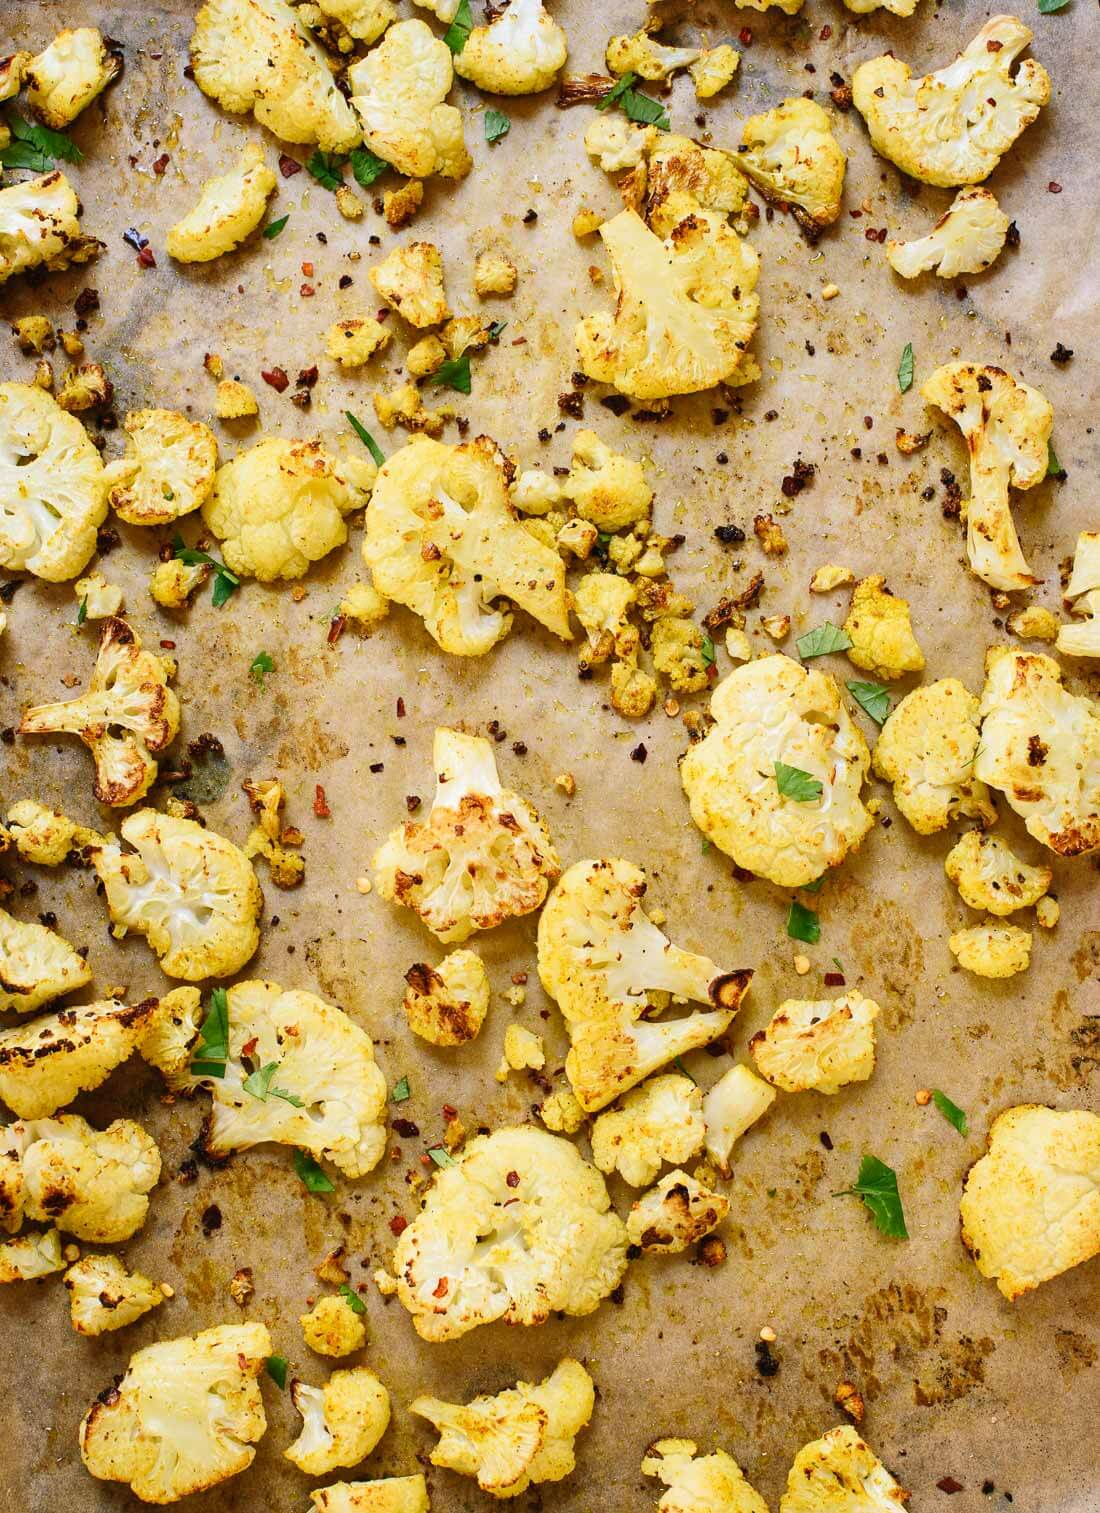 Curried roasted cauliflower recipe - I can't get enough! cookieandkate.com